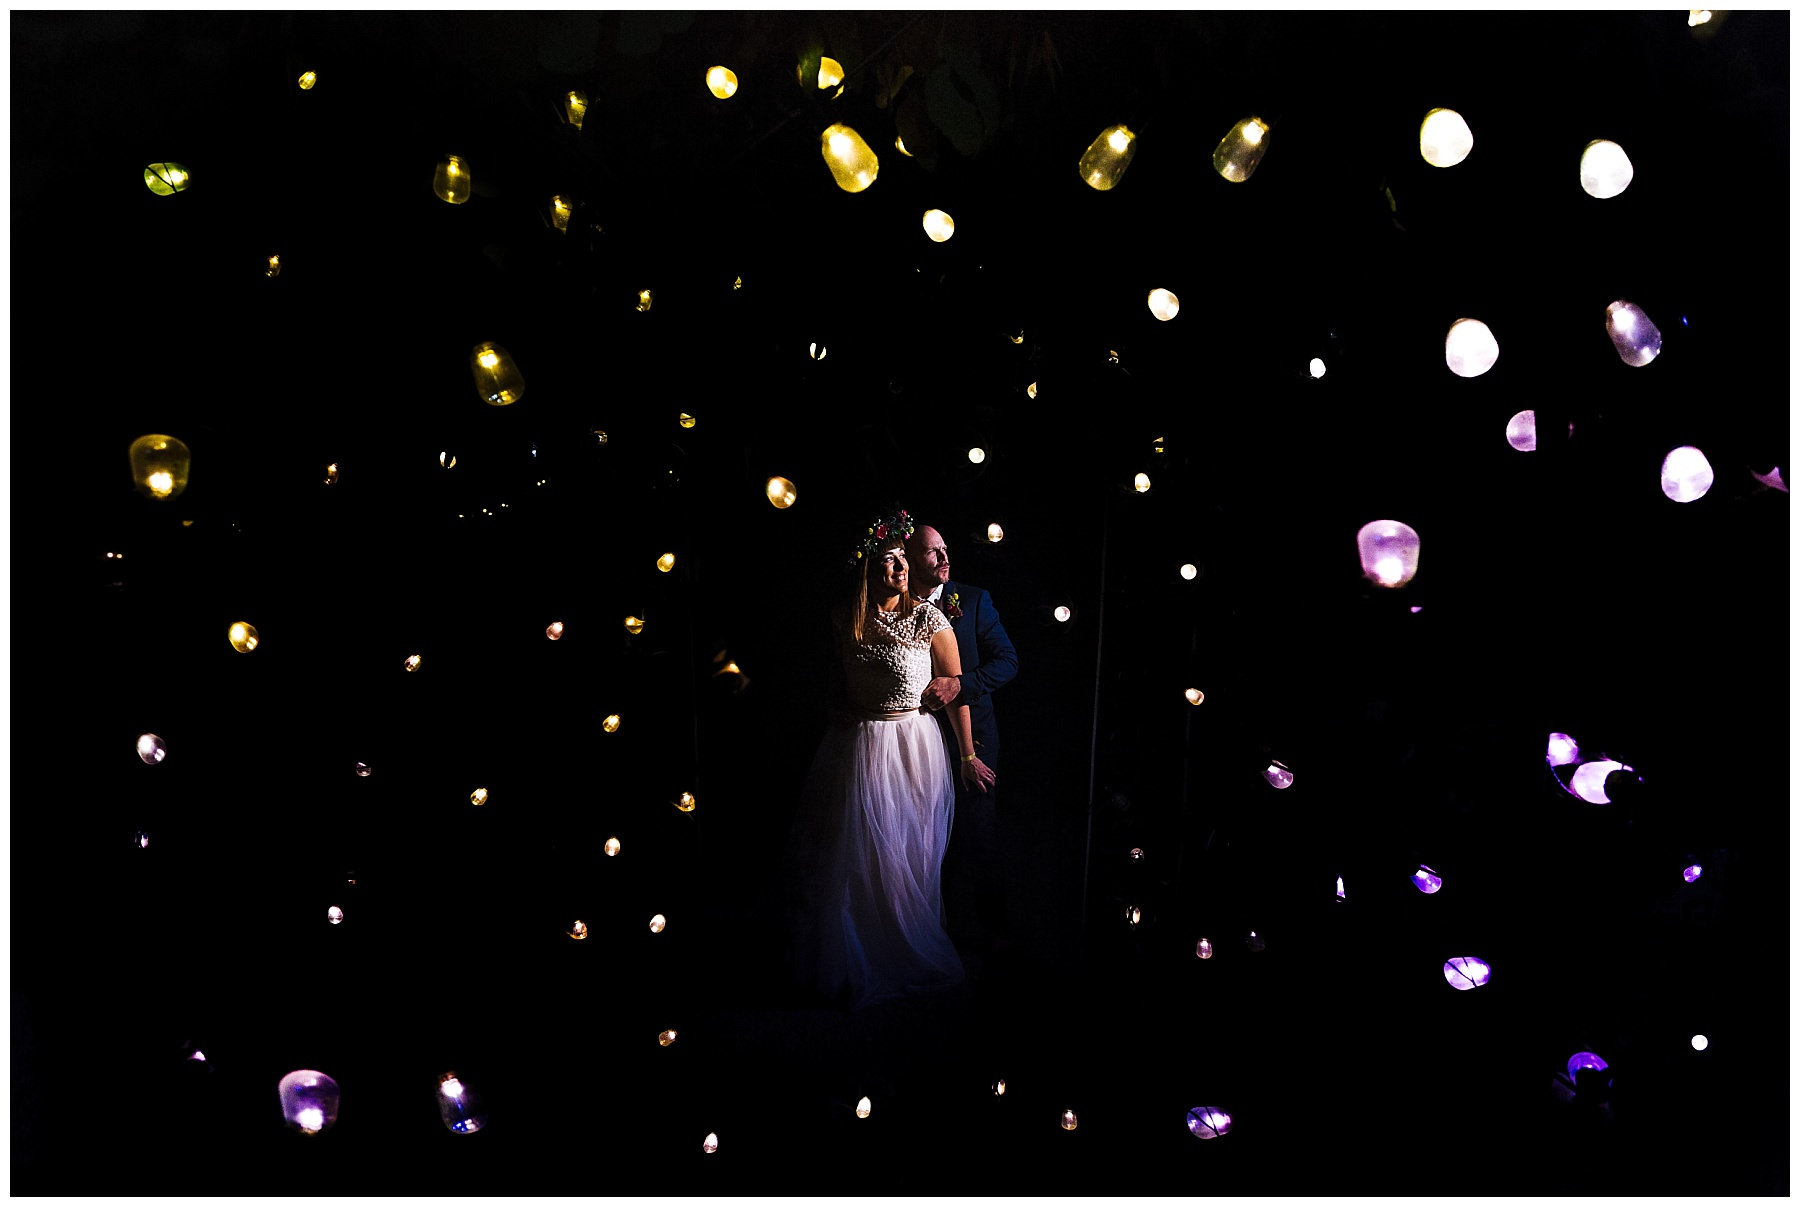 amazing creative wedding photography in bolton by nik bryant photography